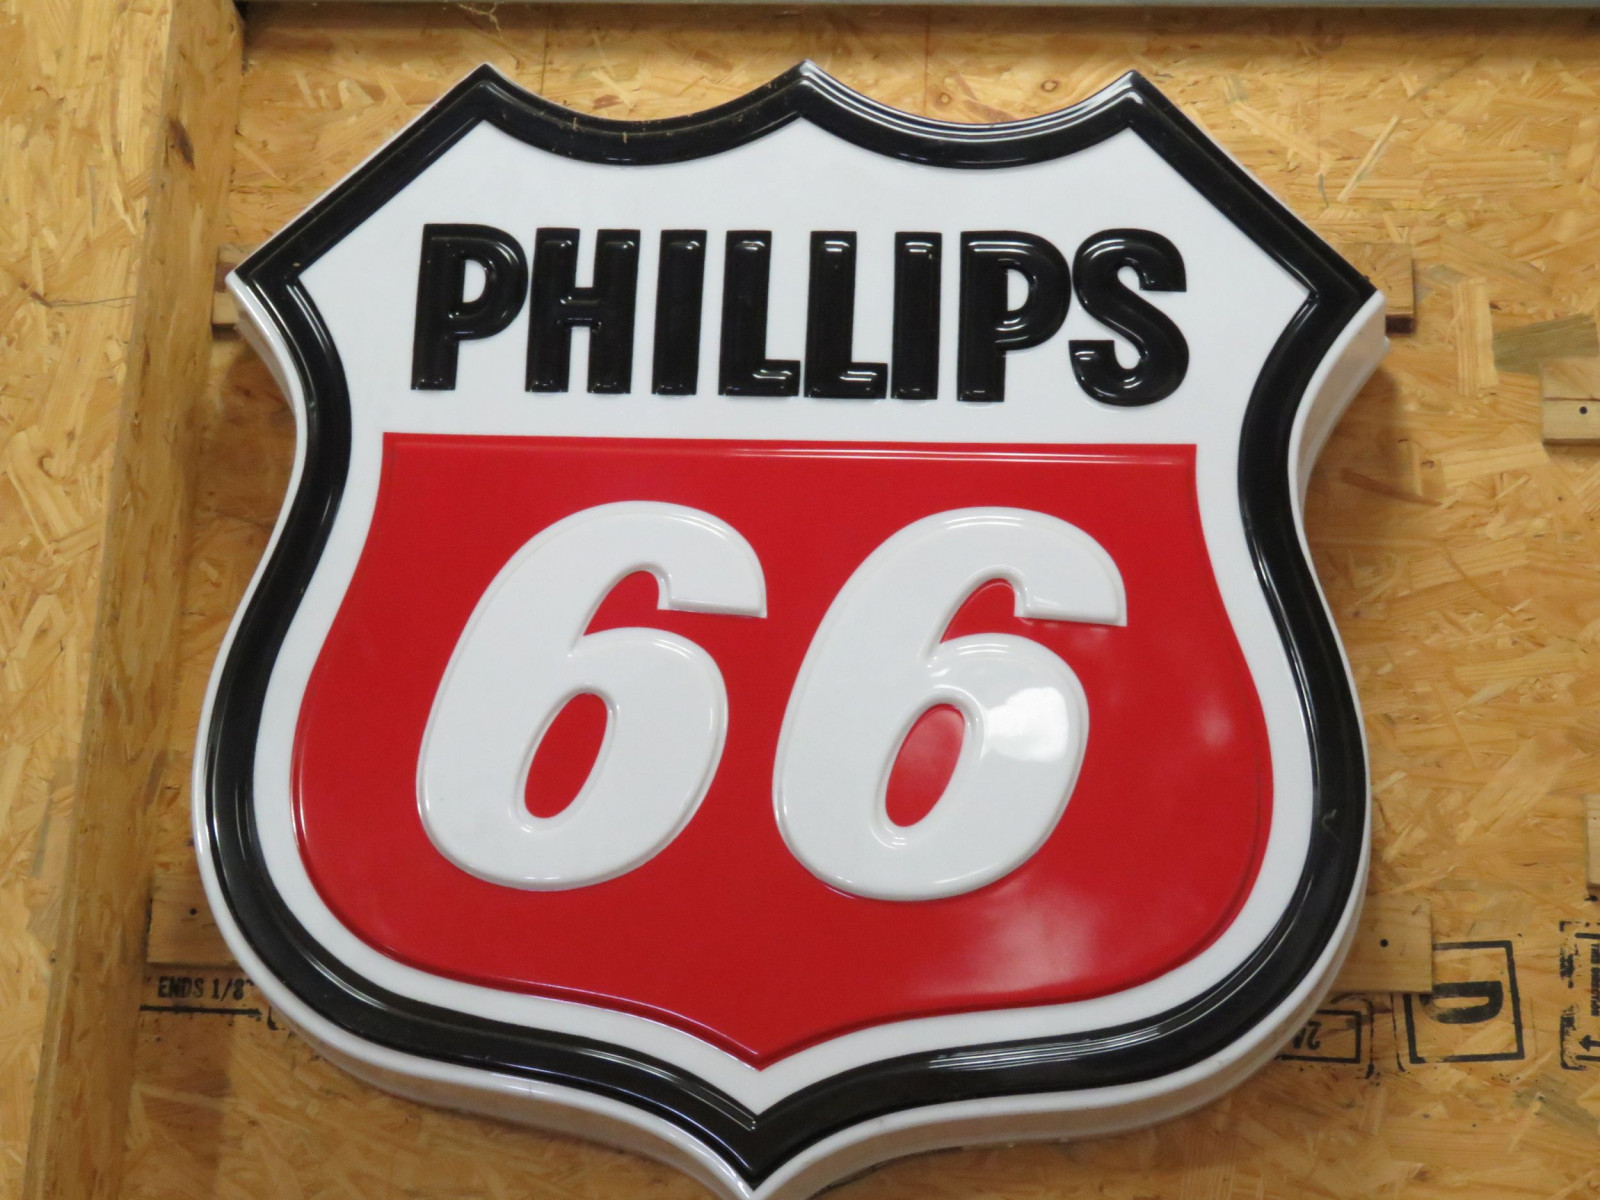 Phillips 66 SS Plastic Sign - Image 1